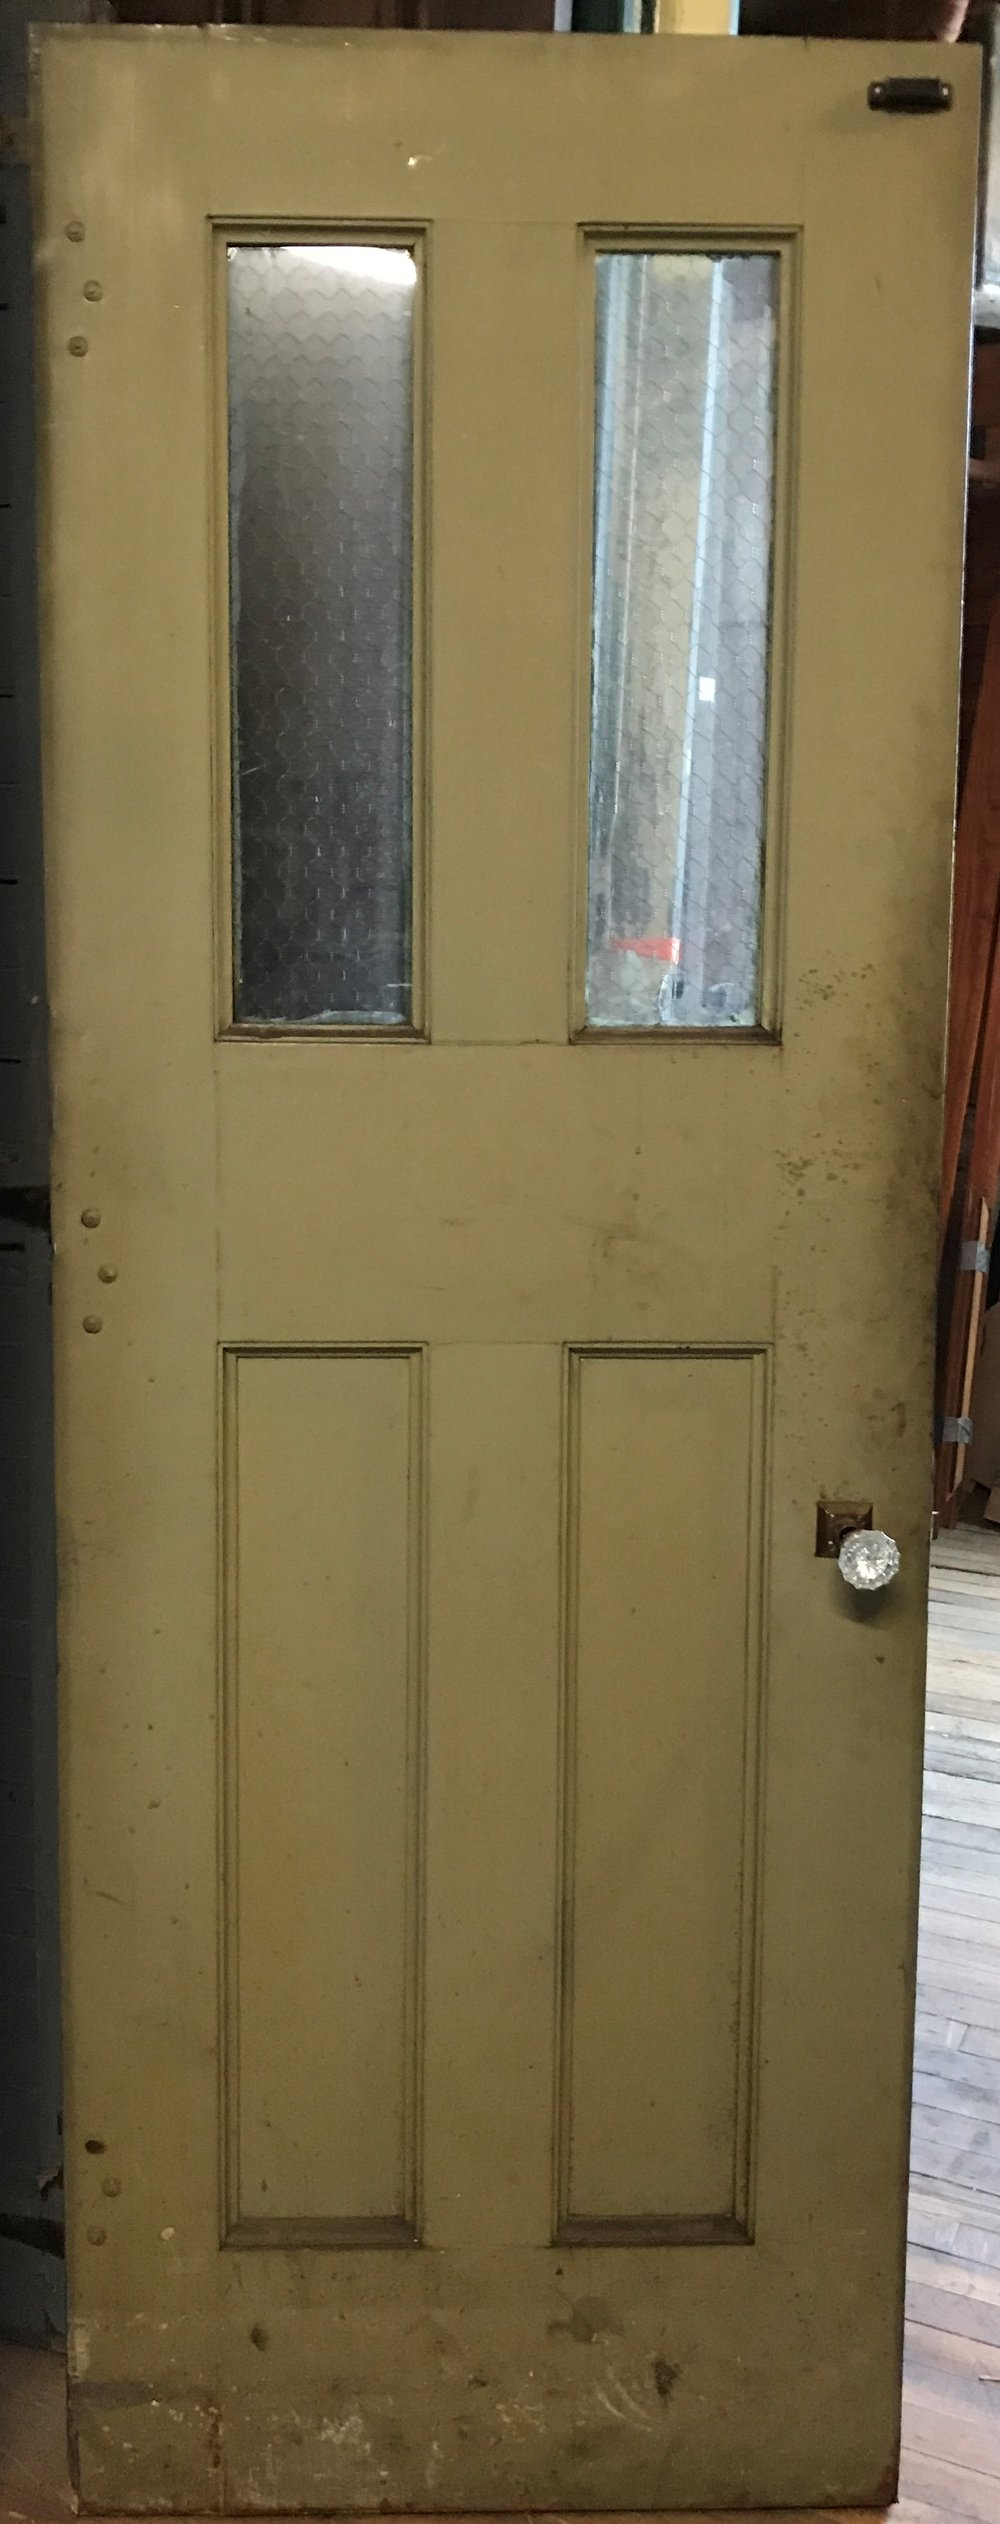 Antique Steel Clad Fire Door With Chicken Wire Glass